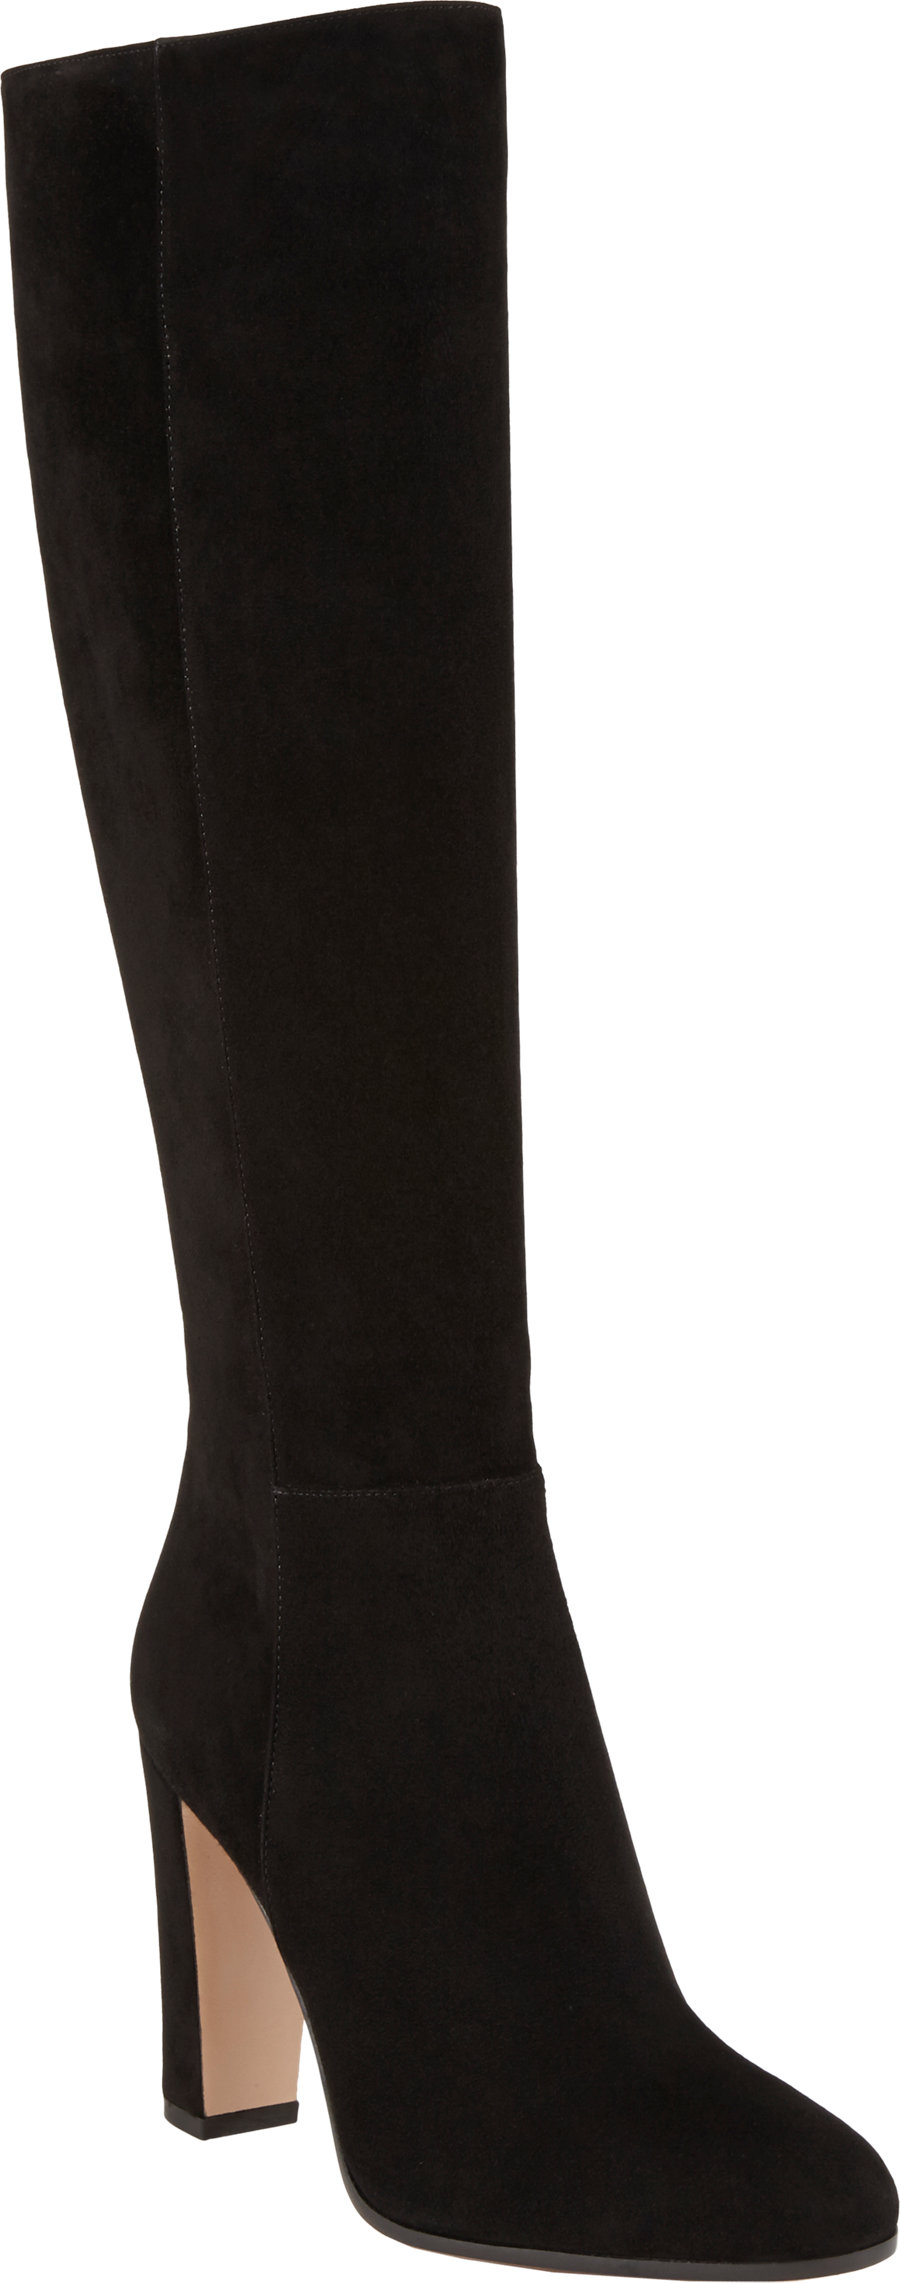 Gianvito Rossi Suede knee-high boots 4iPsE7ThK